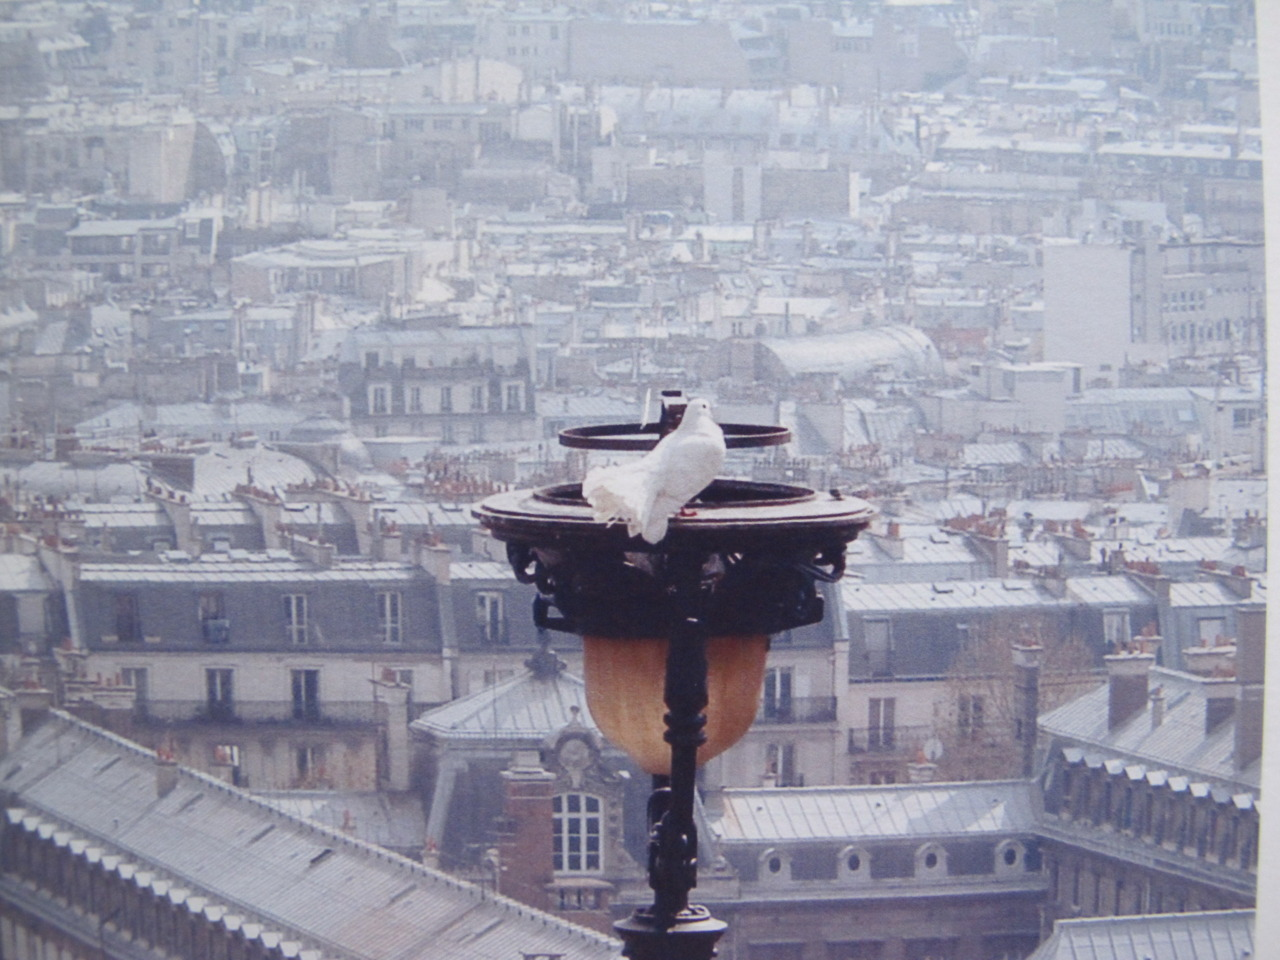 One of my favorite pic …..Paris, je t'aime!